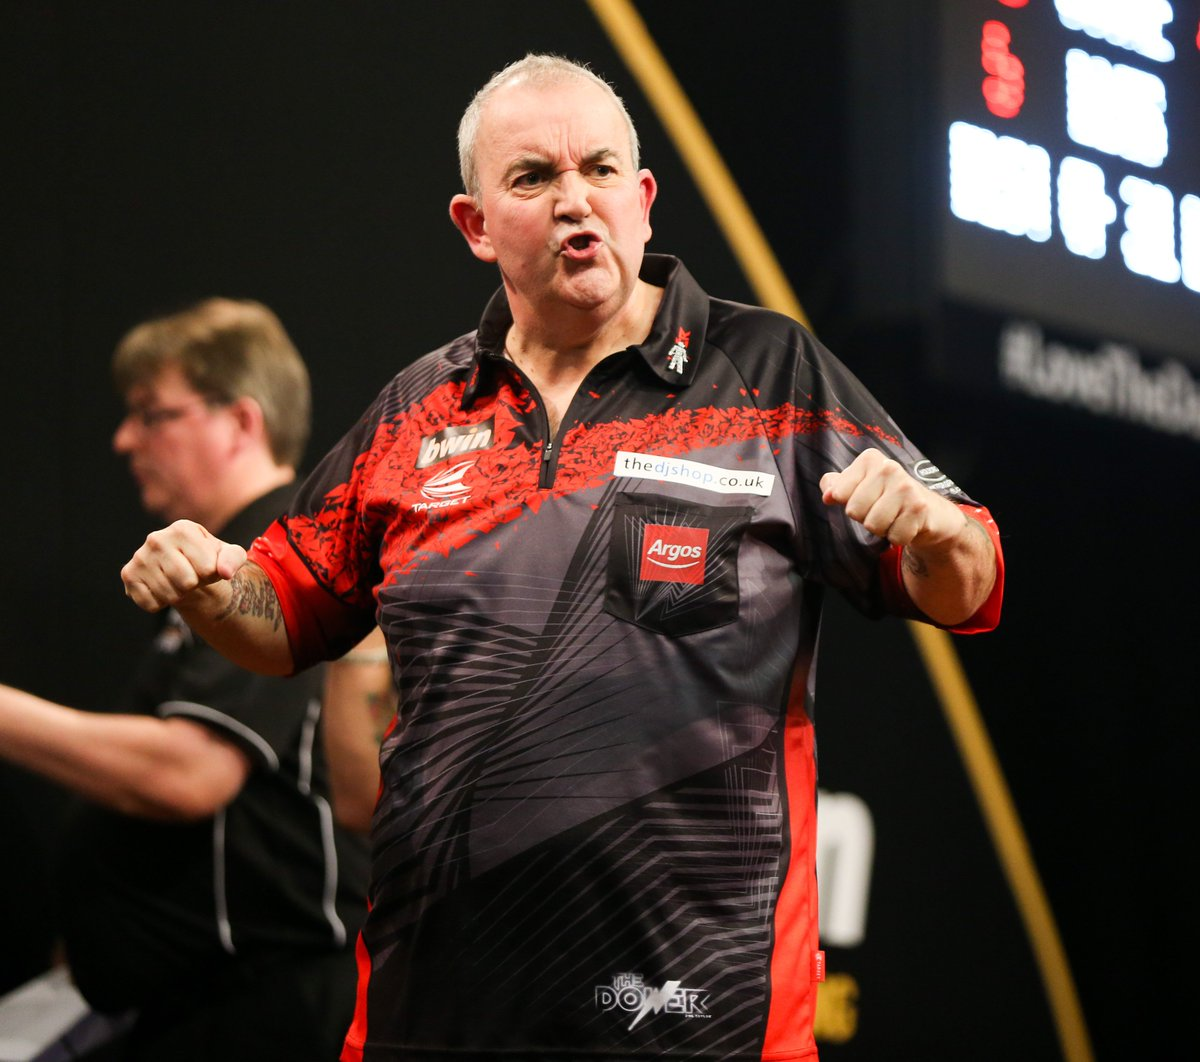 Zombies!!!Another explosive @PhilTaylor interview...Watch here: http://skysports.tv/DA3S4a